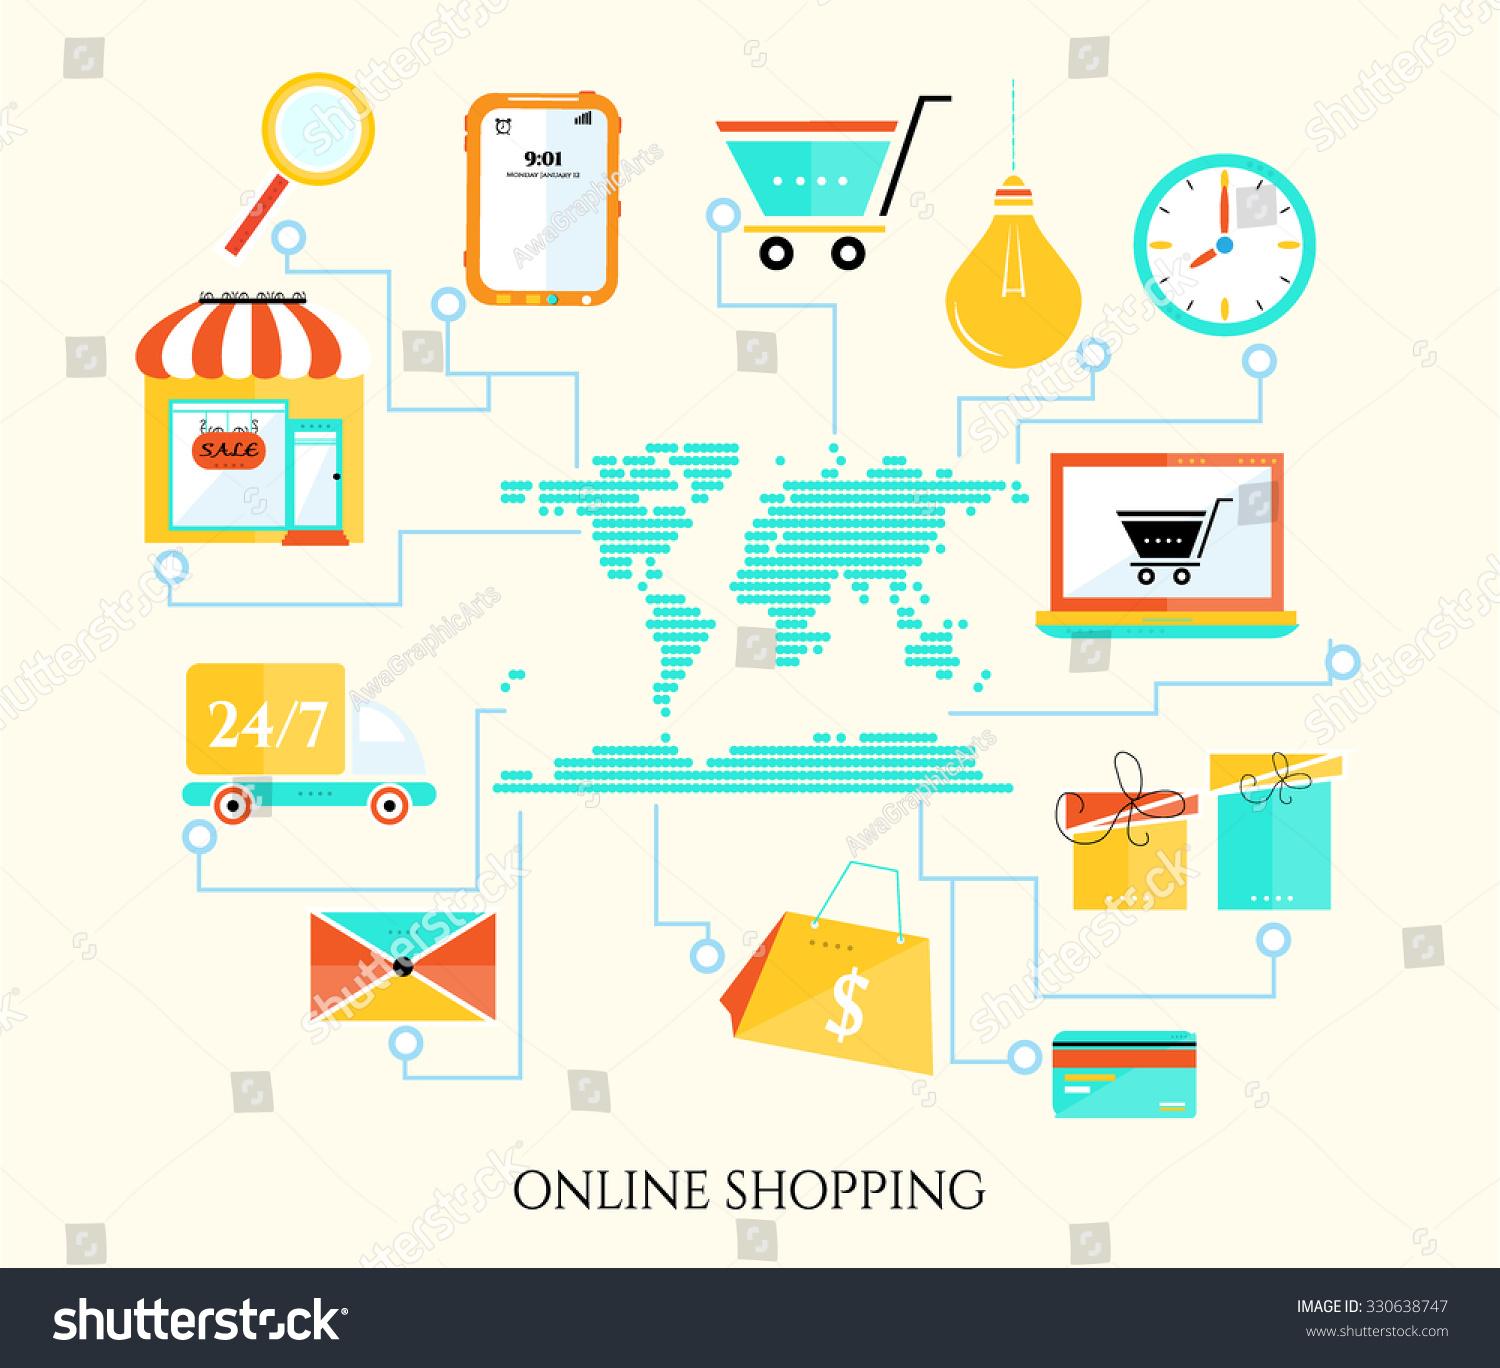 Business background online shopping world map stock vector hd business background online shopping world map with simple icons shopping trolley lightbulb gumiabroncs Gallery